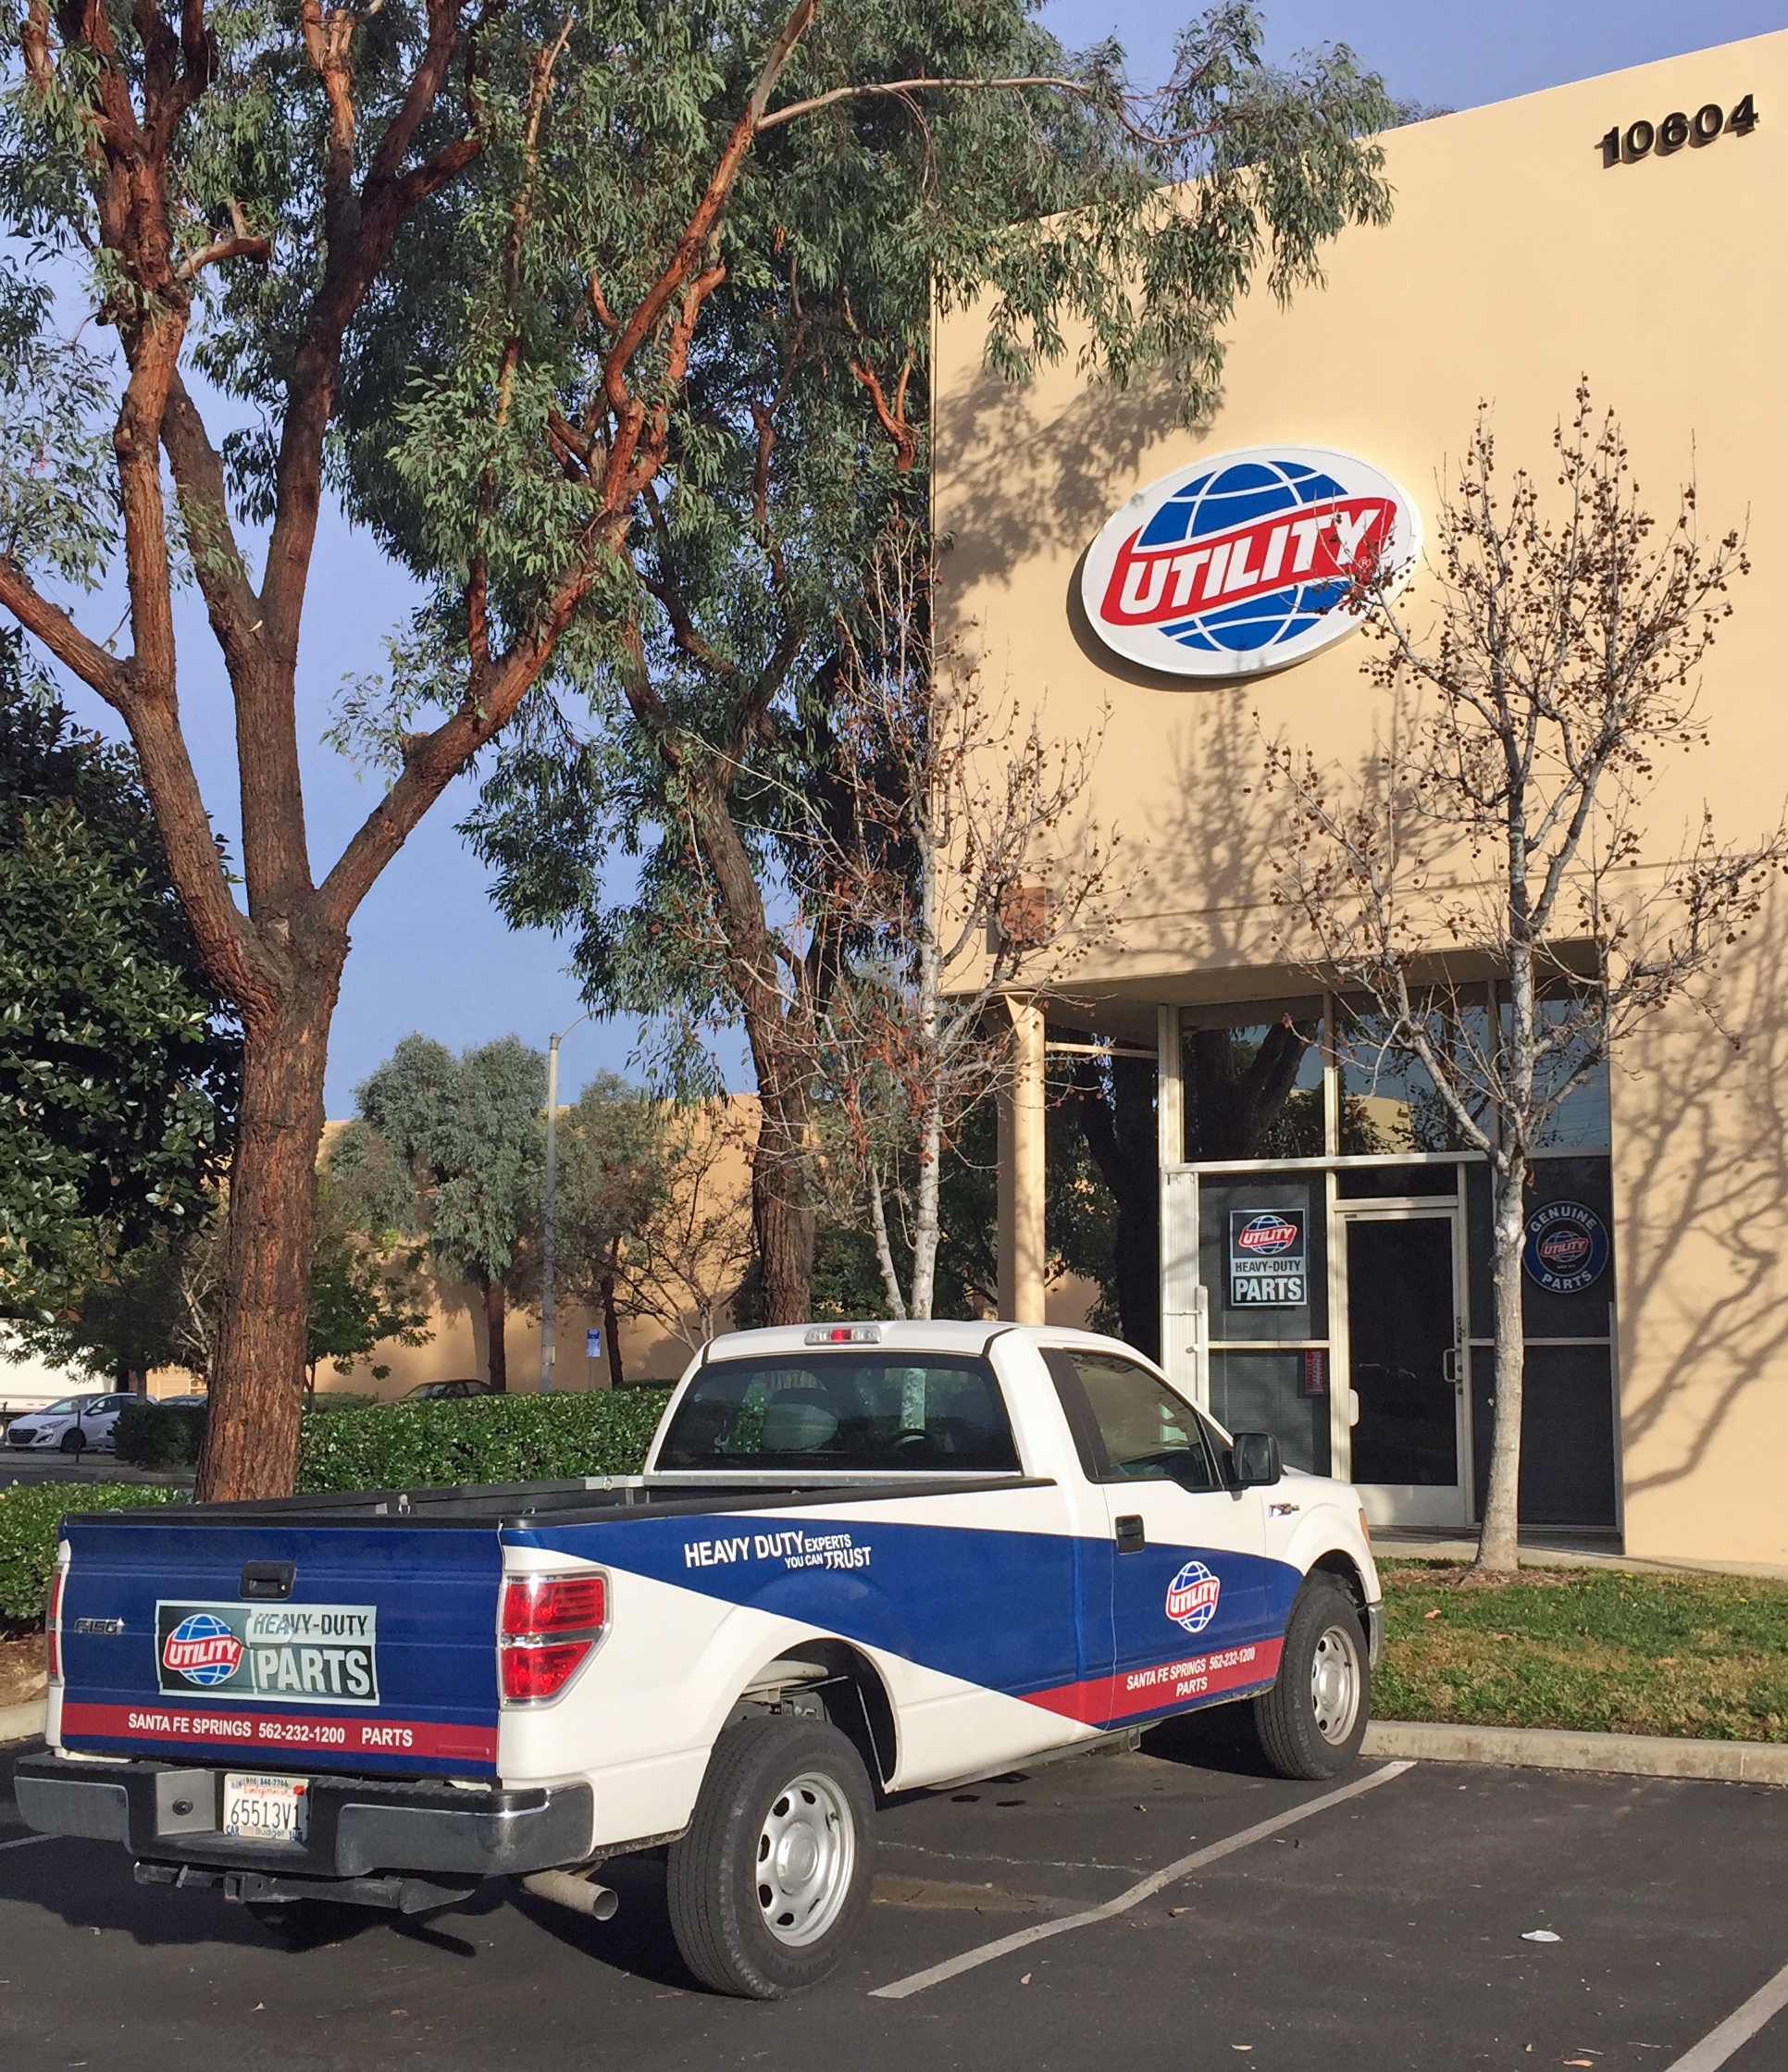 Utility Trailer Sales of Southern California, LLC Adds New Location ...